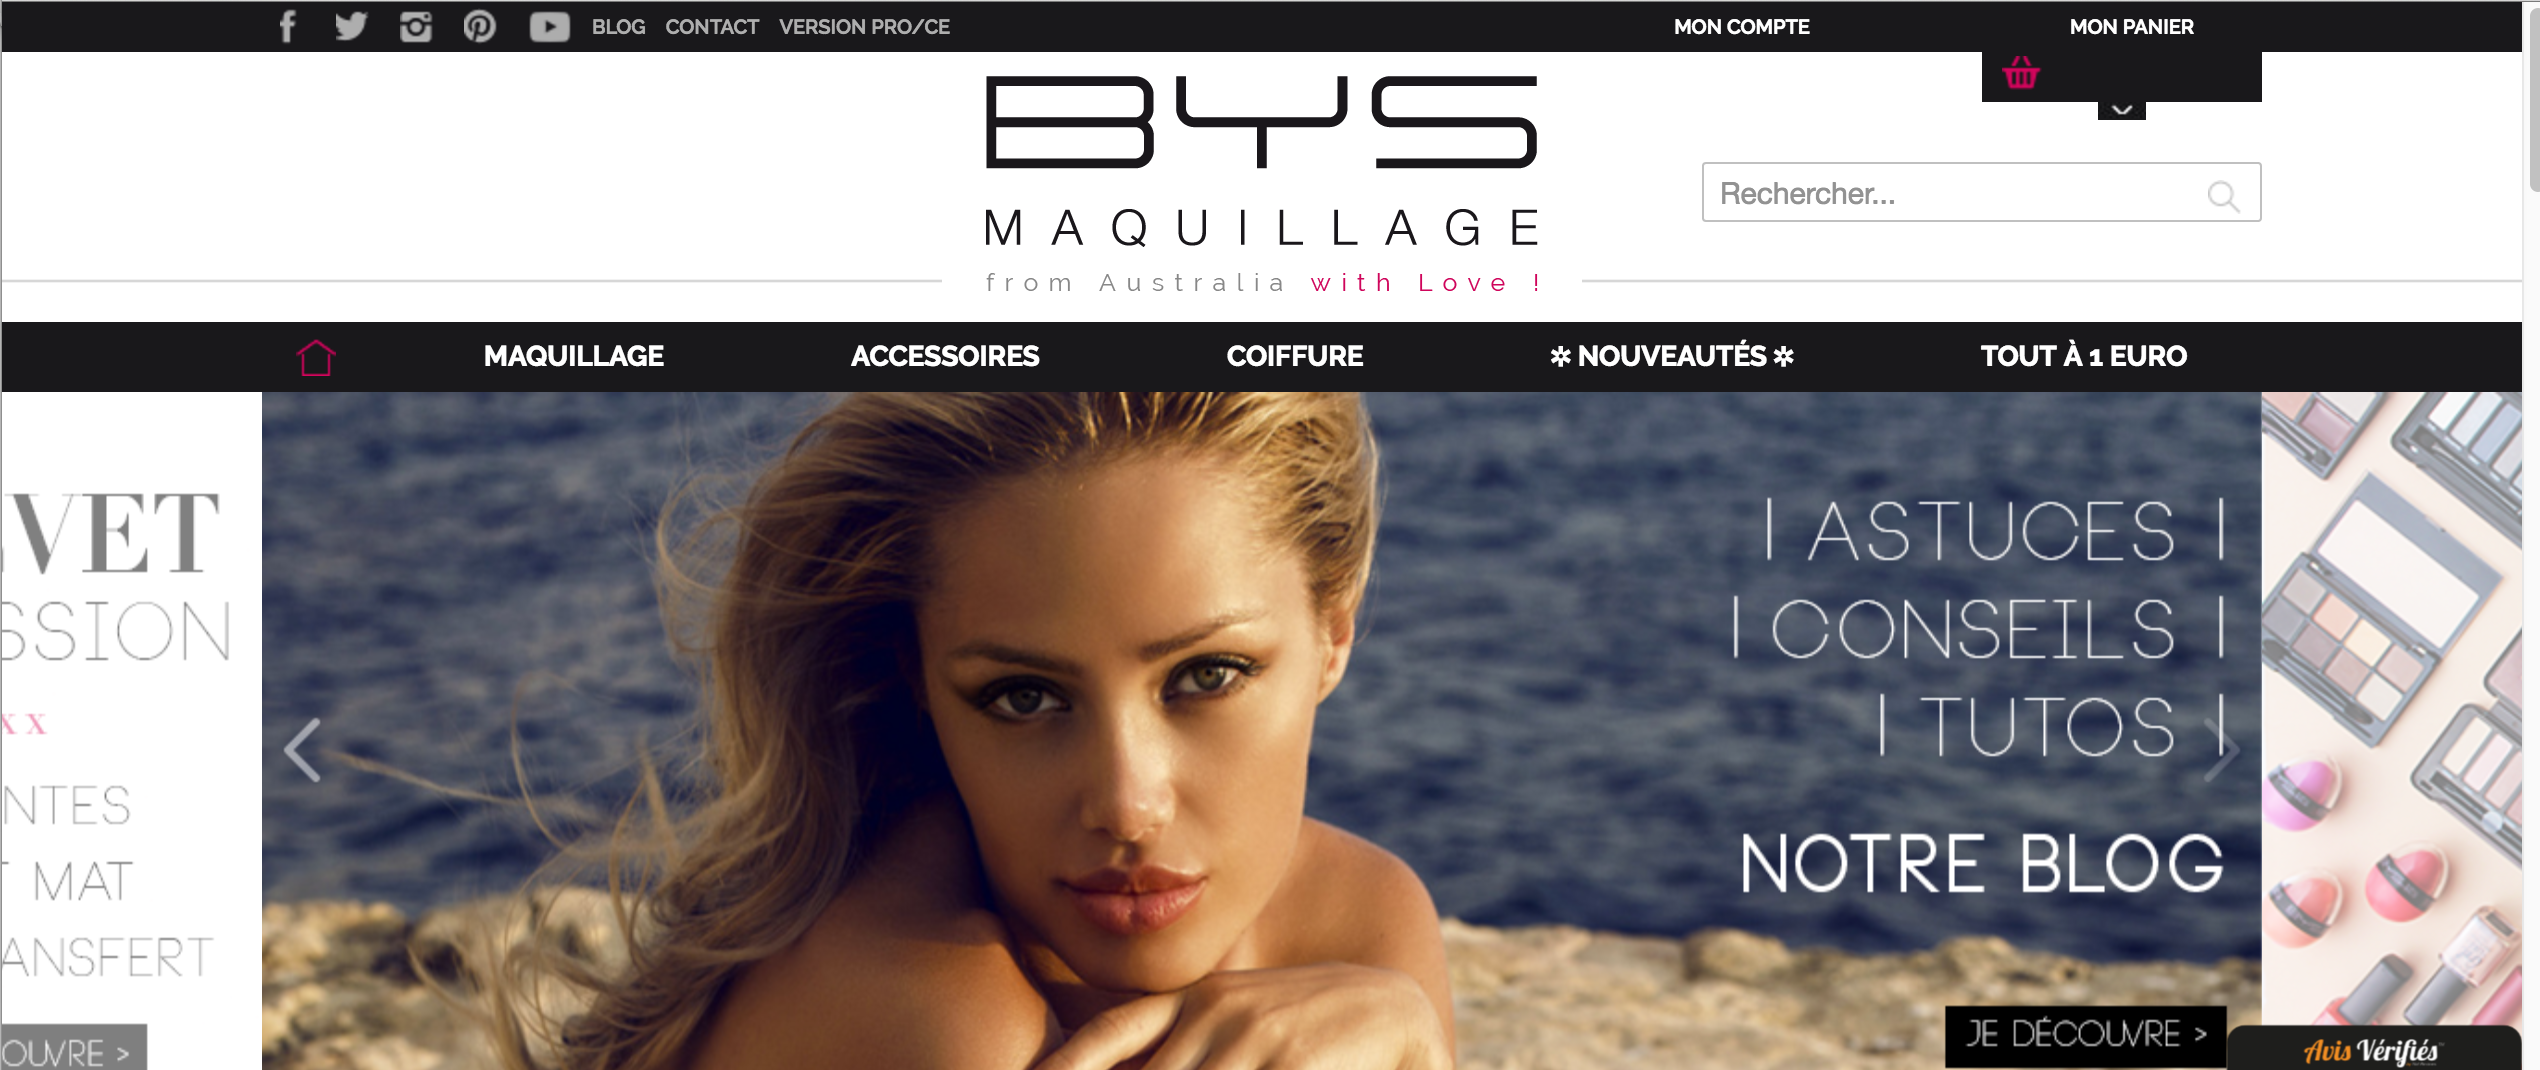 SITE web mode beauté roxane mls bys